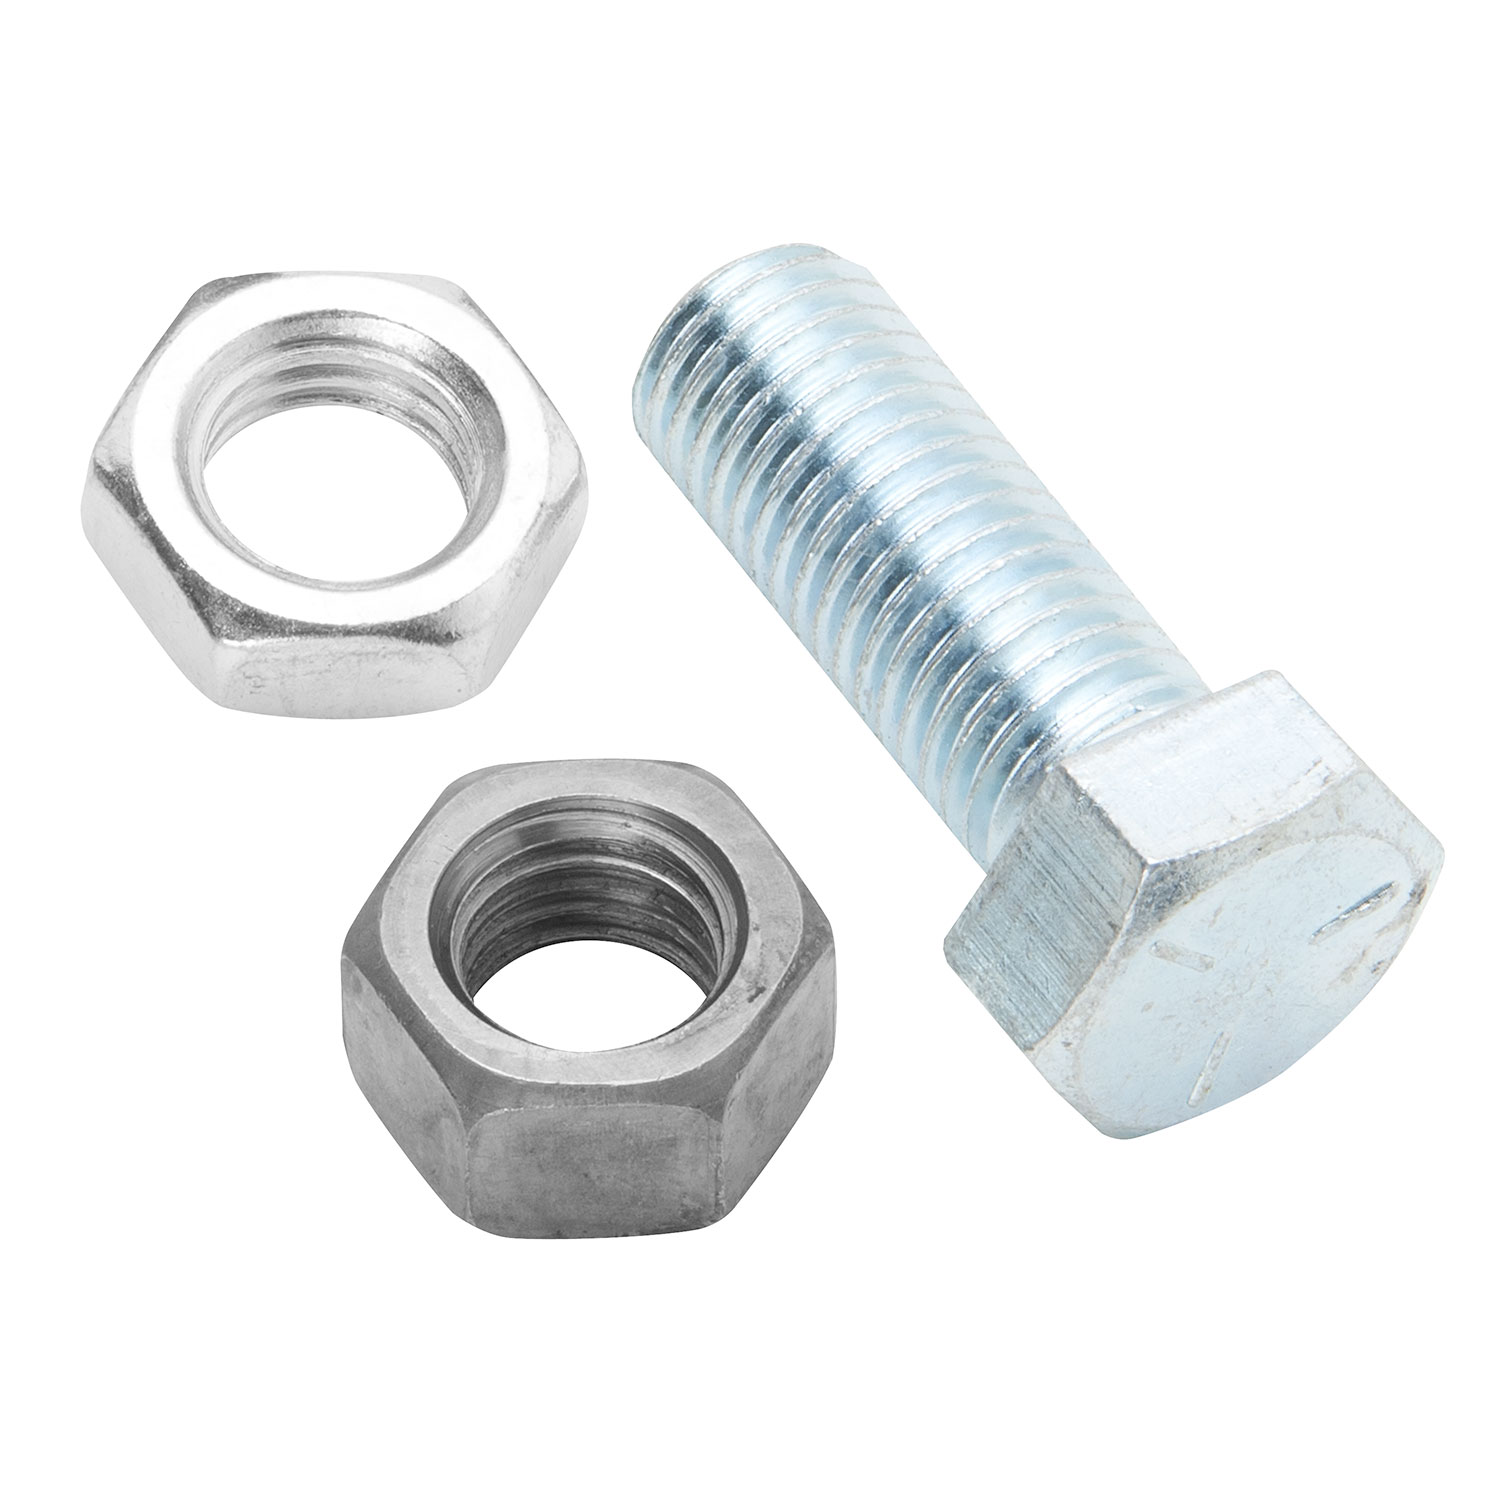 500296 Bulldog Trailer Gooseneck Trailer Coupler Bolt Kit Use With